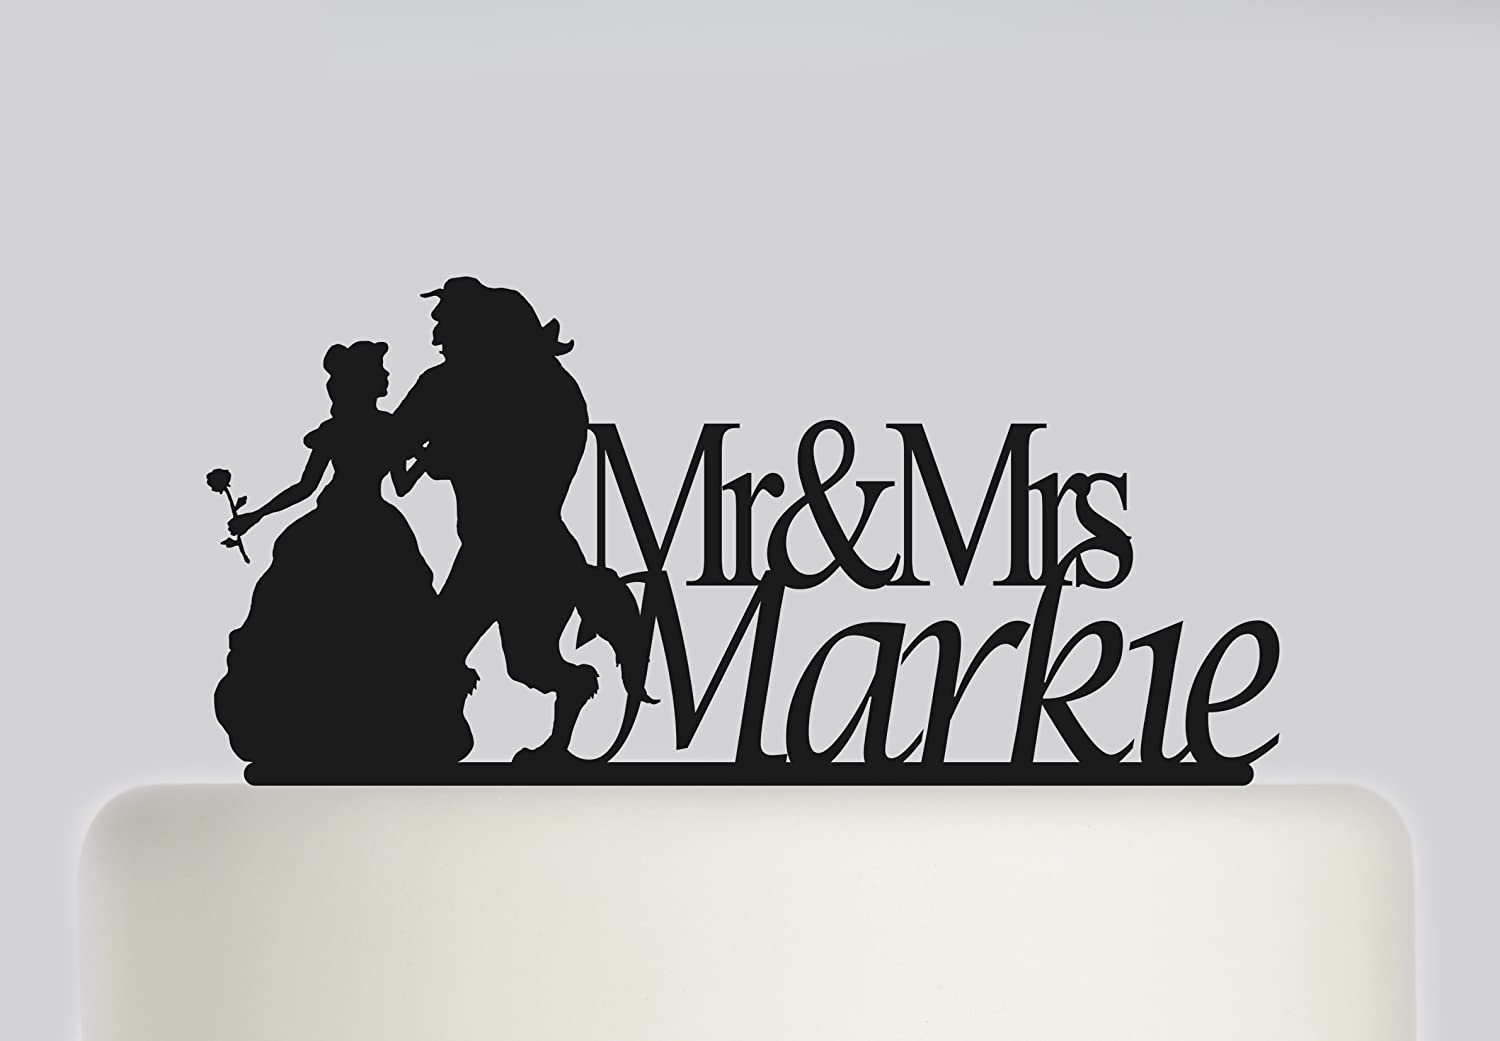 Wedding Cake topper Bride and Groom Beauty and The Beast Themed personalised with your surname. Ideal handmade wedding cake decoration, wedding party Acrylic cake topper MR & Mrs Cake topper, Available in Gold Mirror, Gold Sparkle, Silver Mirror, Silver Sp